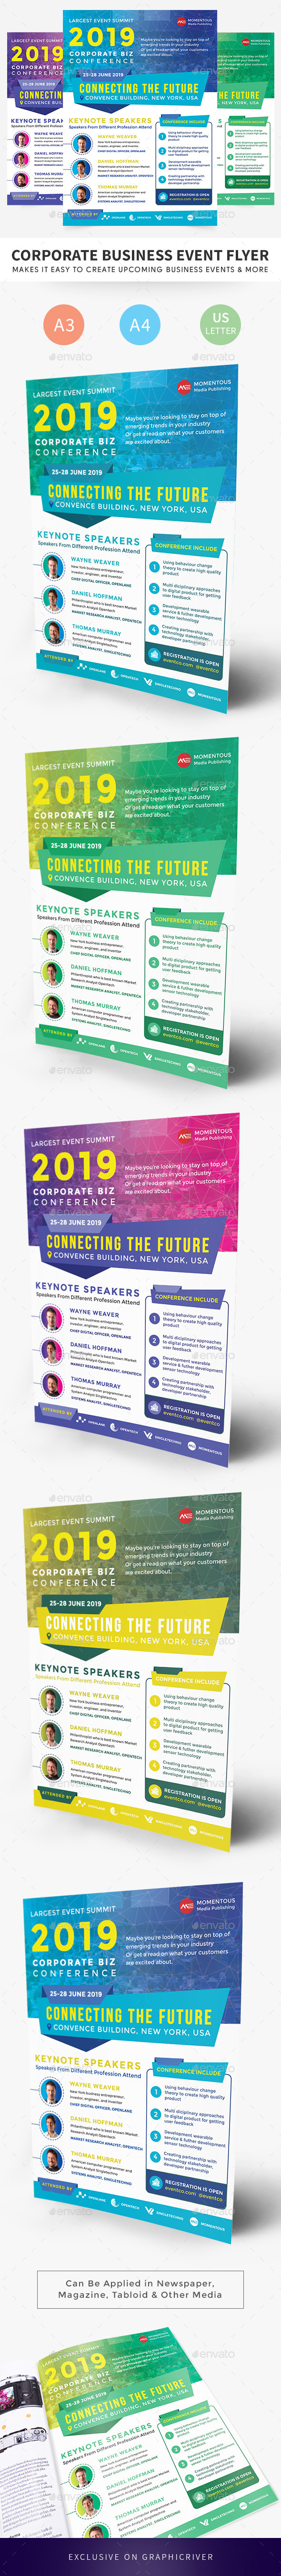 Corporate Business Event Flyer - Corporate Flyers